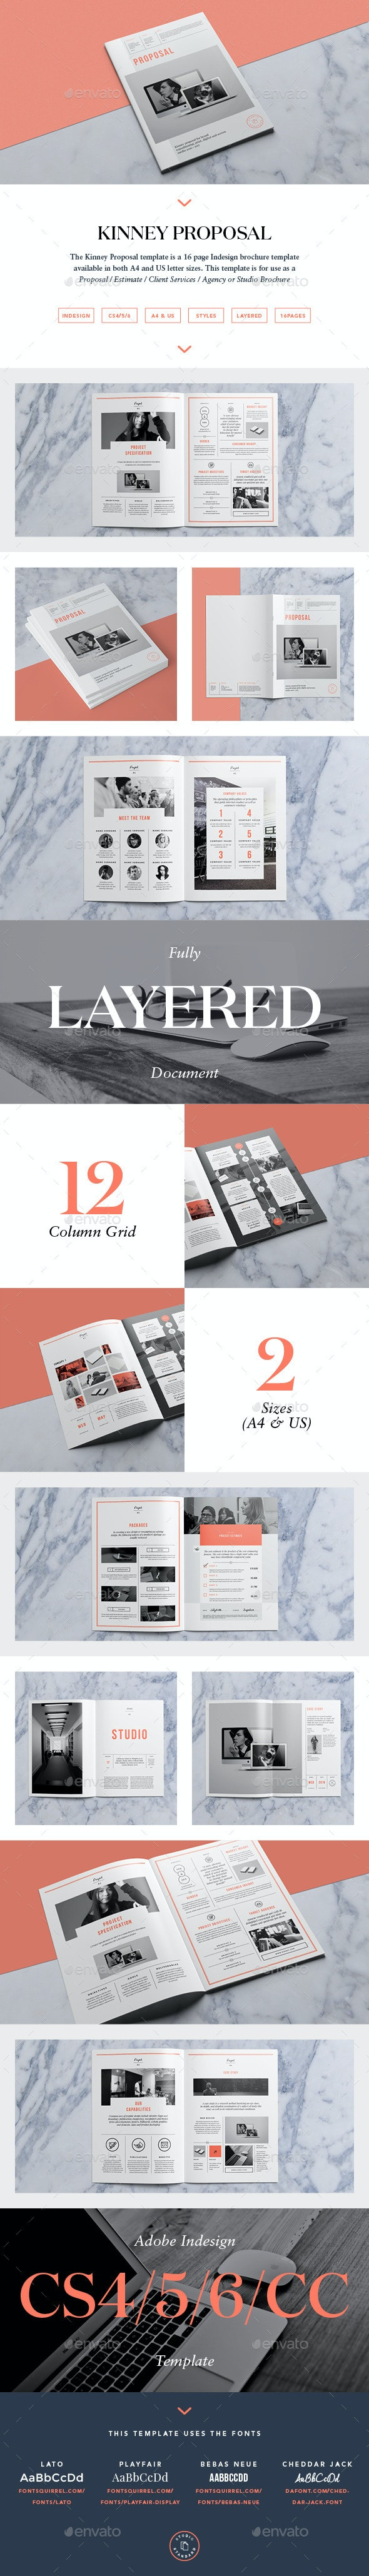 Kinney Proposal - Proposals & Invoices Stationery